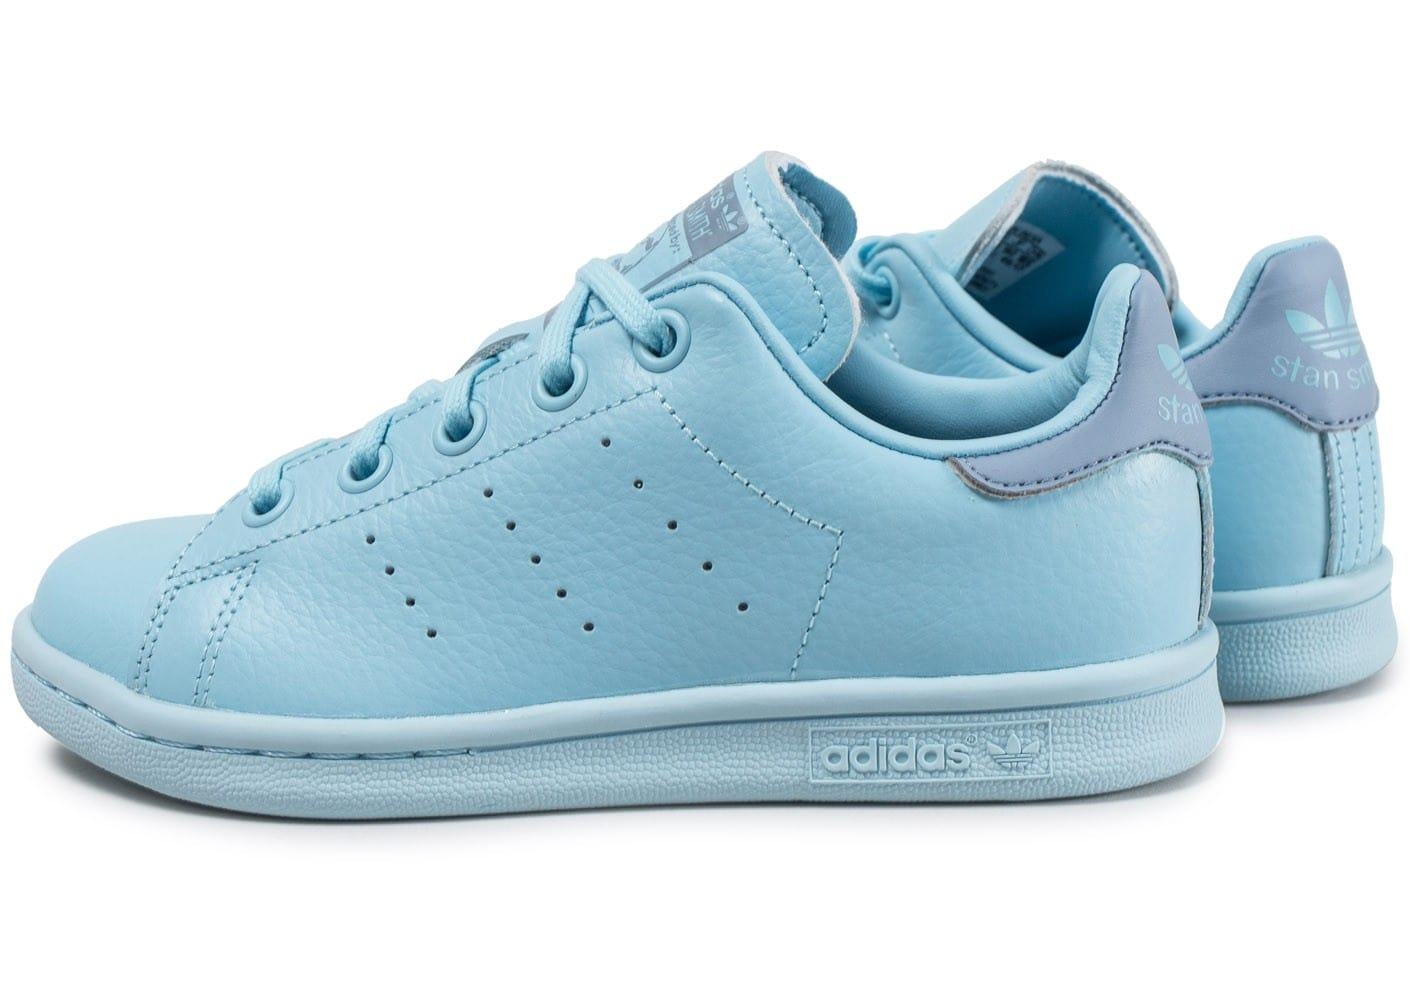 adidas stan smith enfant bleu ciel chaussures adidas chausport. Black Bedroom Furniture Sets. Home Design Ideas